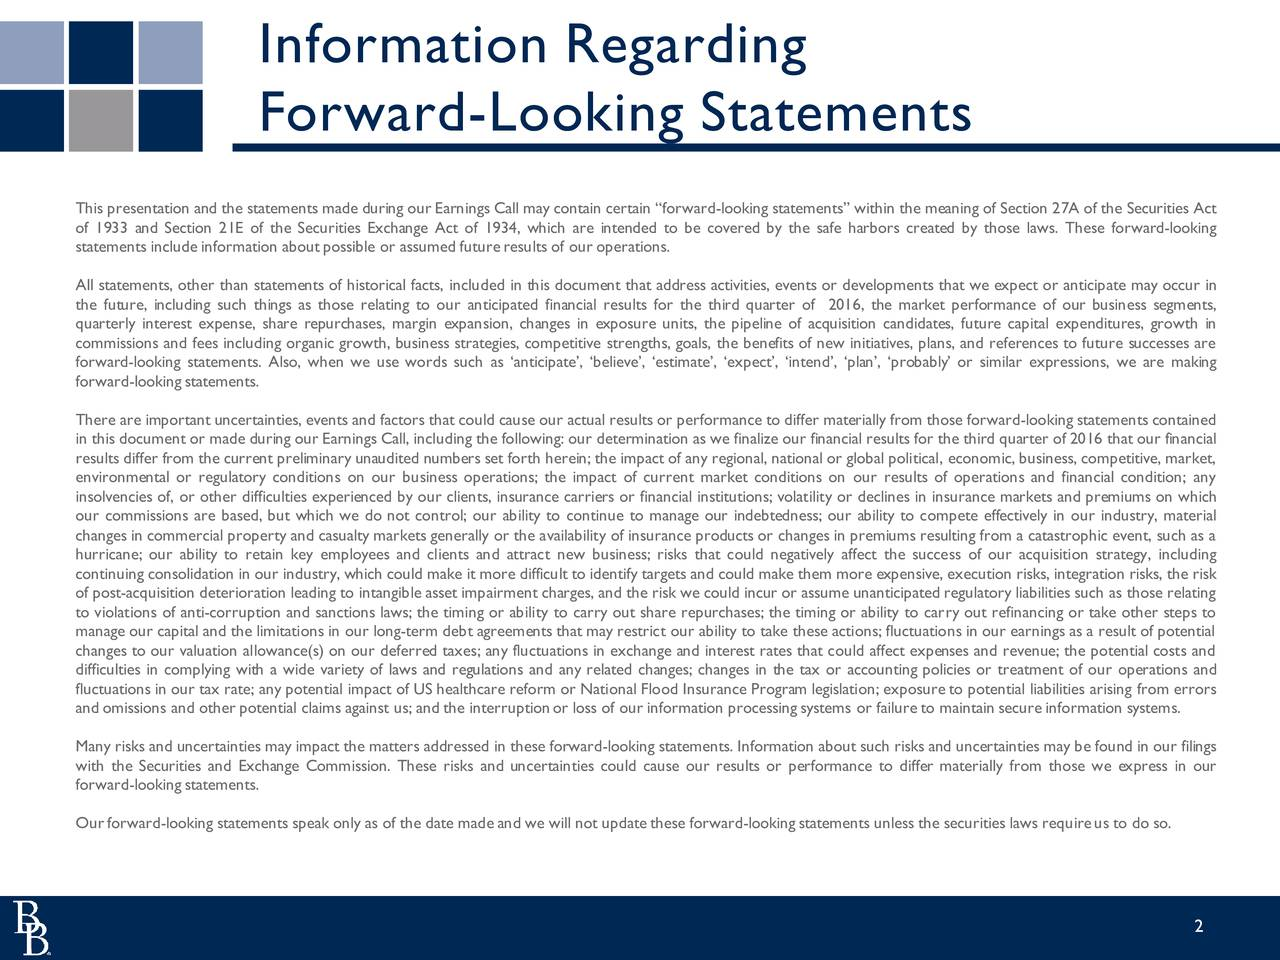 Forward-Looking Statements This presentation and the statements made during our Earnings Call may contain certain forward-looking statements within the meaning of Section 27A of the Securities Act of 1933 and Section 21E of the Securities Exchange Act of 1934, which are intended to be covered by the safe harbors created by those laws. These forward-looking statements include information aboutpossible or assumed futureresults of our operations. All statements, other than statements of historical facts, included in this document that address activities, events or developments that we expect or anticipate may occur in the future, including such things as those relating to our anticipated financial results for the third quarter of 2016, the market performance of our business segments, quarterly interest expense, share repurchases, margin expansion, changes in exposure units, the pipeline of acquisition candidates, future capital expenditures, growth in commissions and fees including organic growth, business strategies, competitive strengths, goals, the benefits of new initiatives, plans, and references to future successes are forward-looking statements. Also, when we use words such as anticipate, believe, estimate, expect, intend, plan, probably or similar expressions, we are making forward-looking statements. There are important uncertainties, events and factors that could cause our actual results or performance to differ materially from those forward-looking statements contained in this document or made during our Earnings Call, including the following: our determination as we finalize our financial results for the third quarter of 2016 that our financial results differ from the current preliminary unaudited numbers set forth herein; the impact of any regional, national or global political, economic, business, competitive, market, environmental or regulatory conditions on our business operations; the impact of current market conditions on our results of operations and